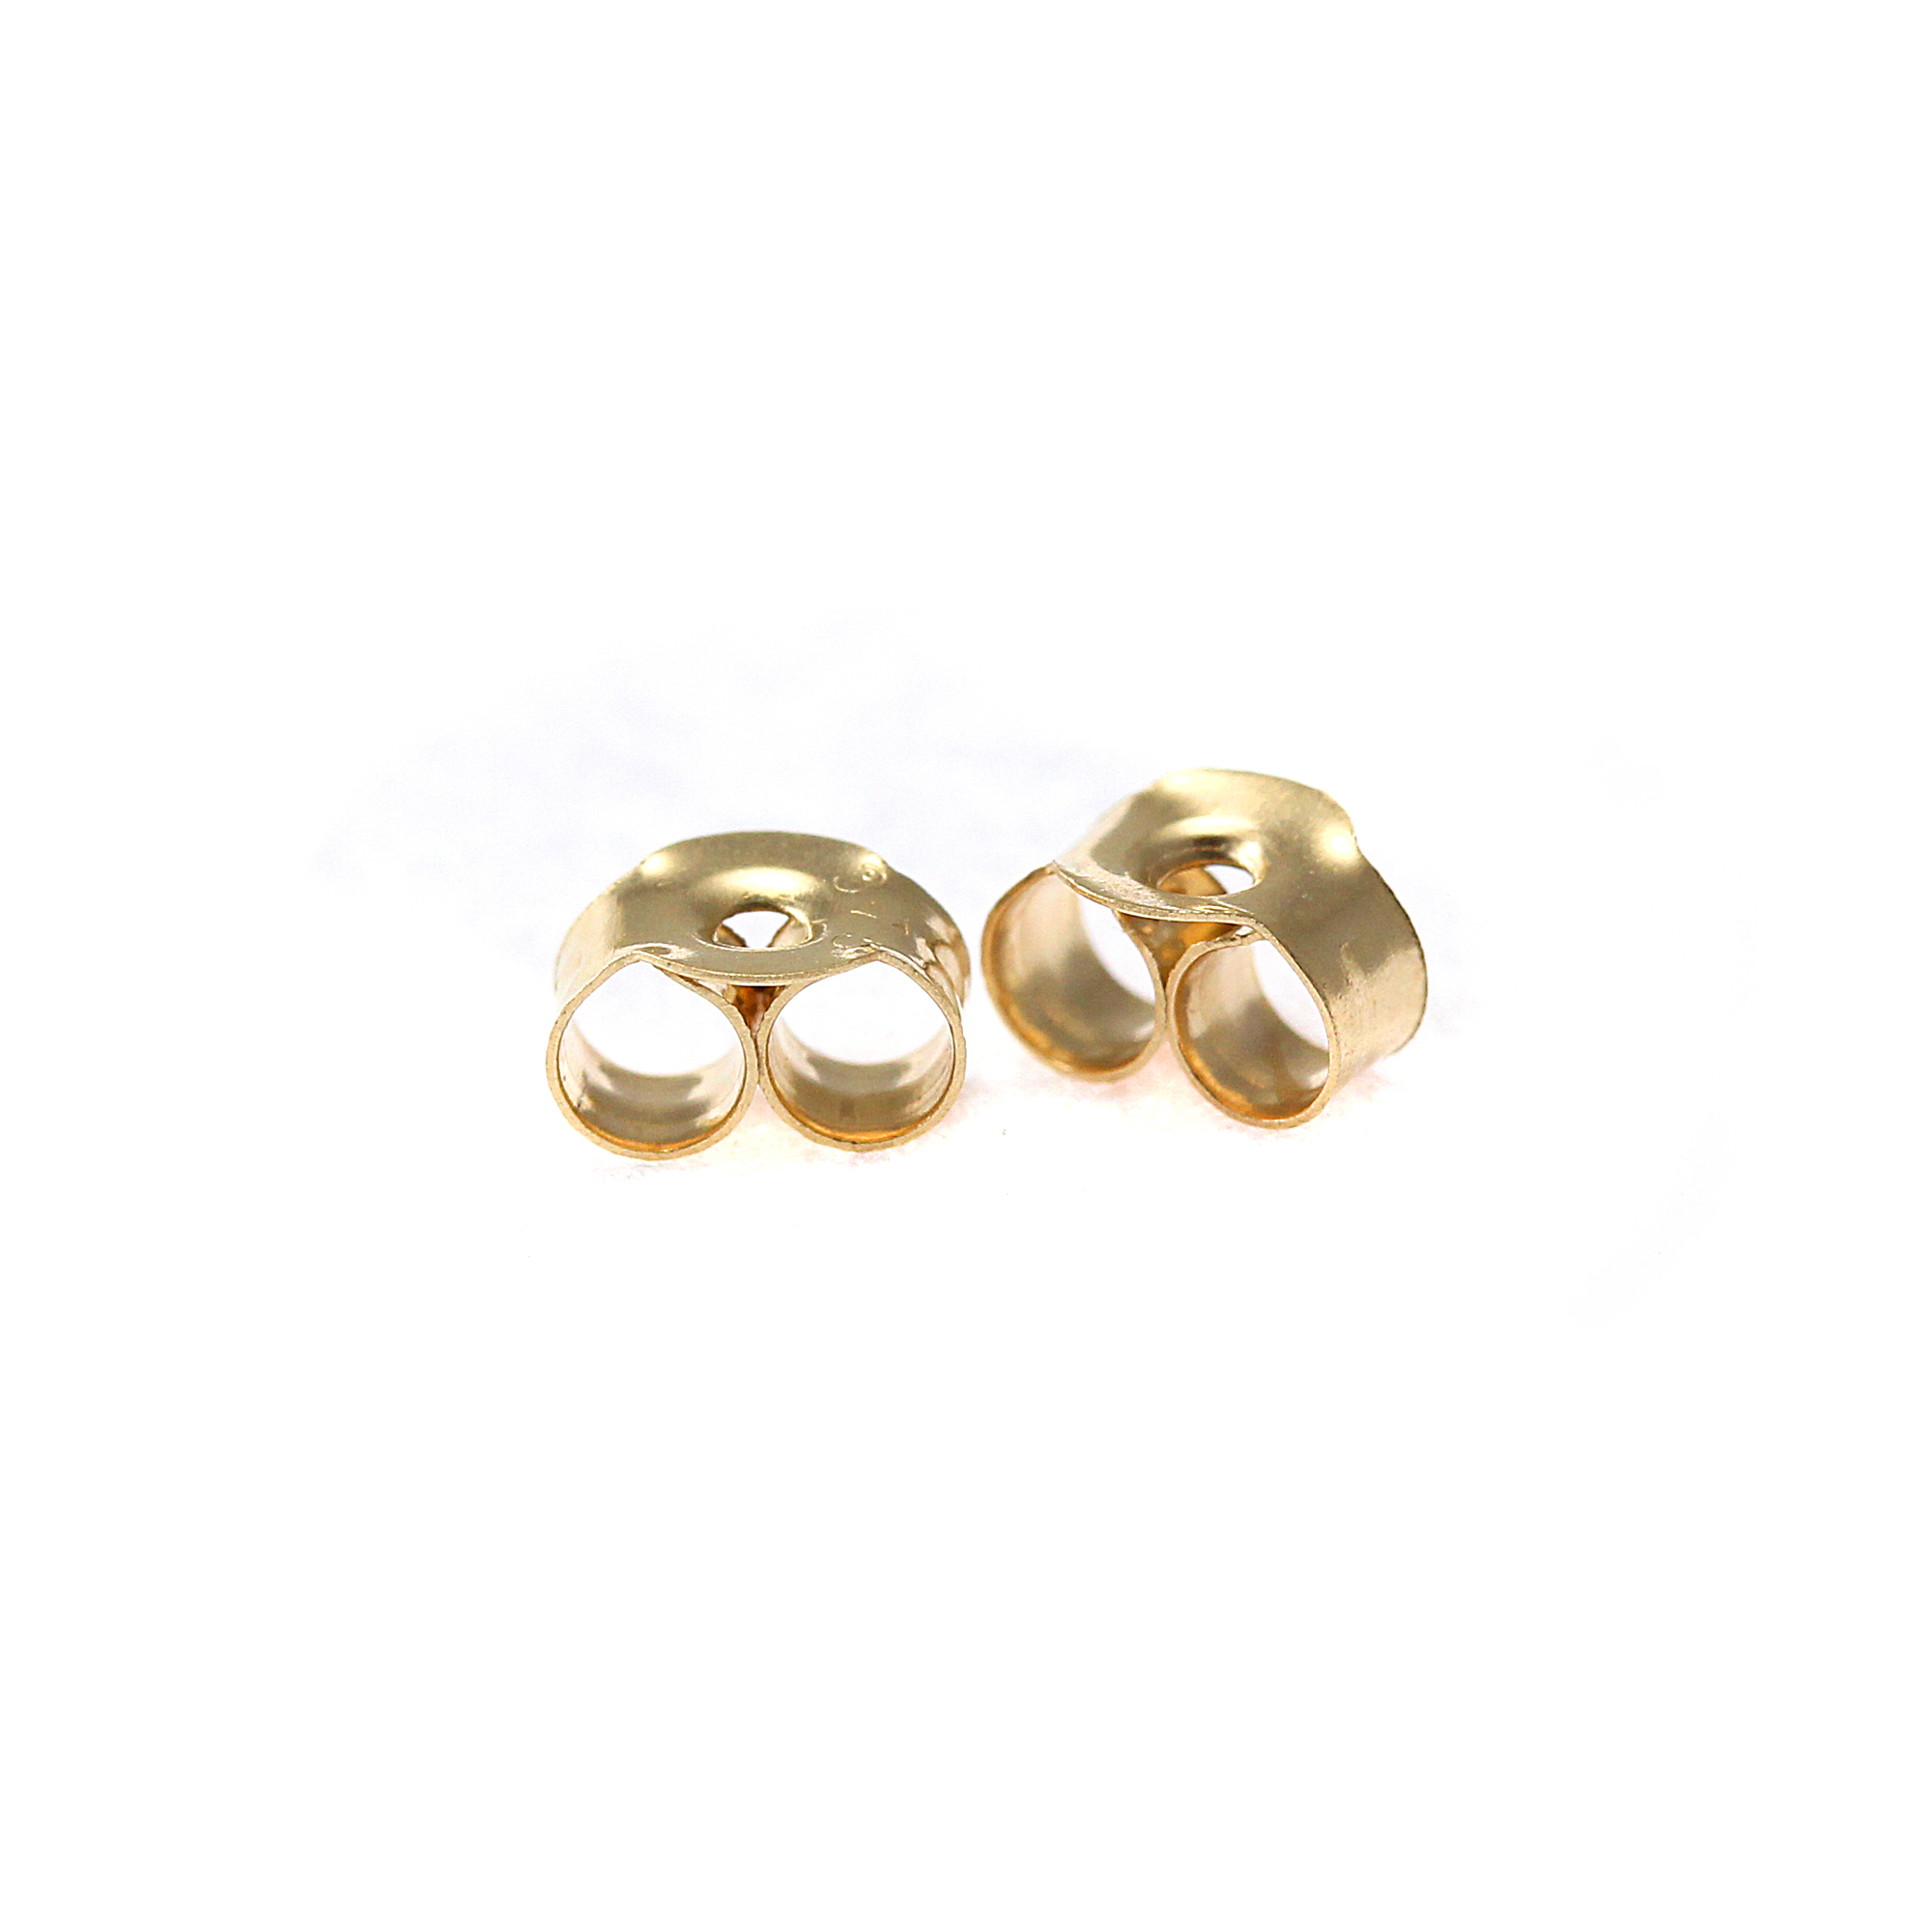 An image of 10 Pairs of 9ct Gold Butterfly Backs Scrolls for Stud Earrings 3mm